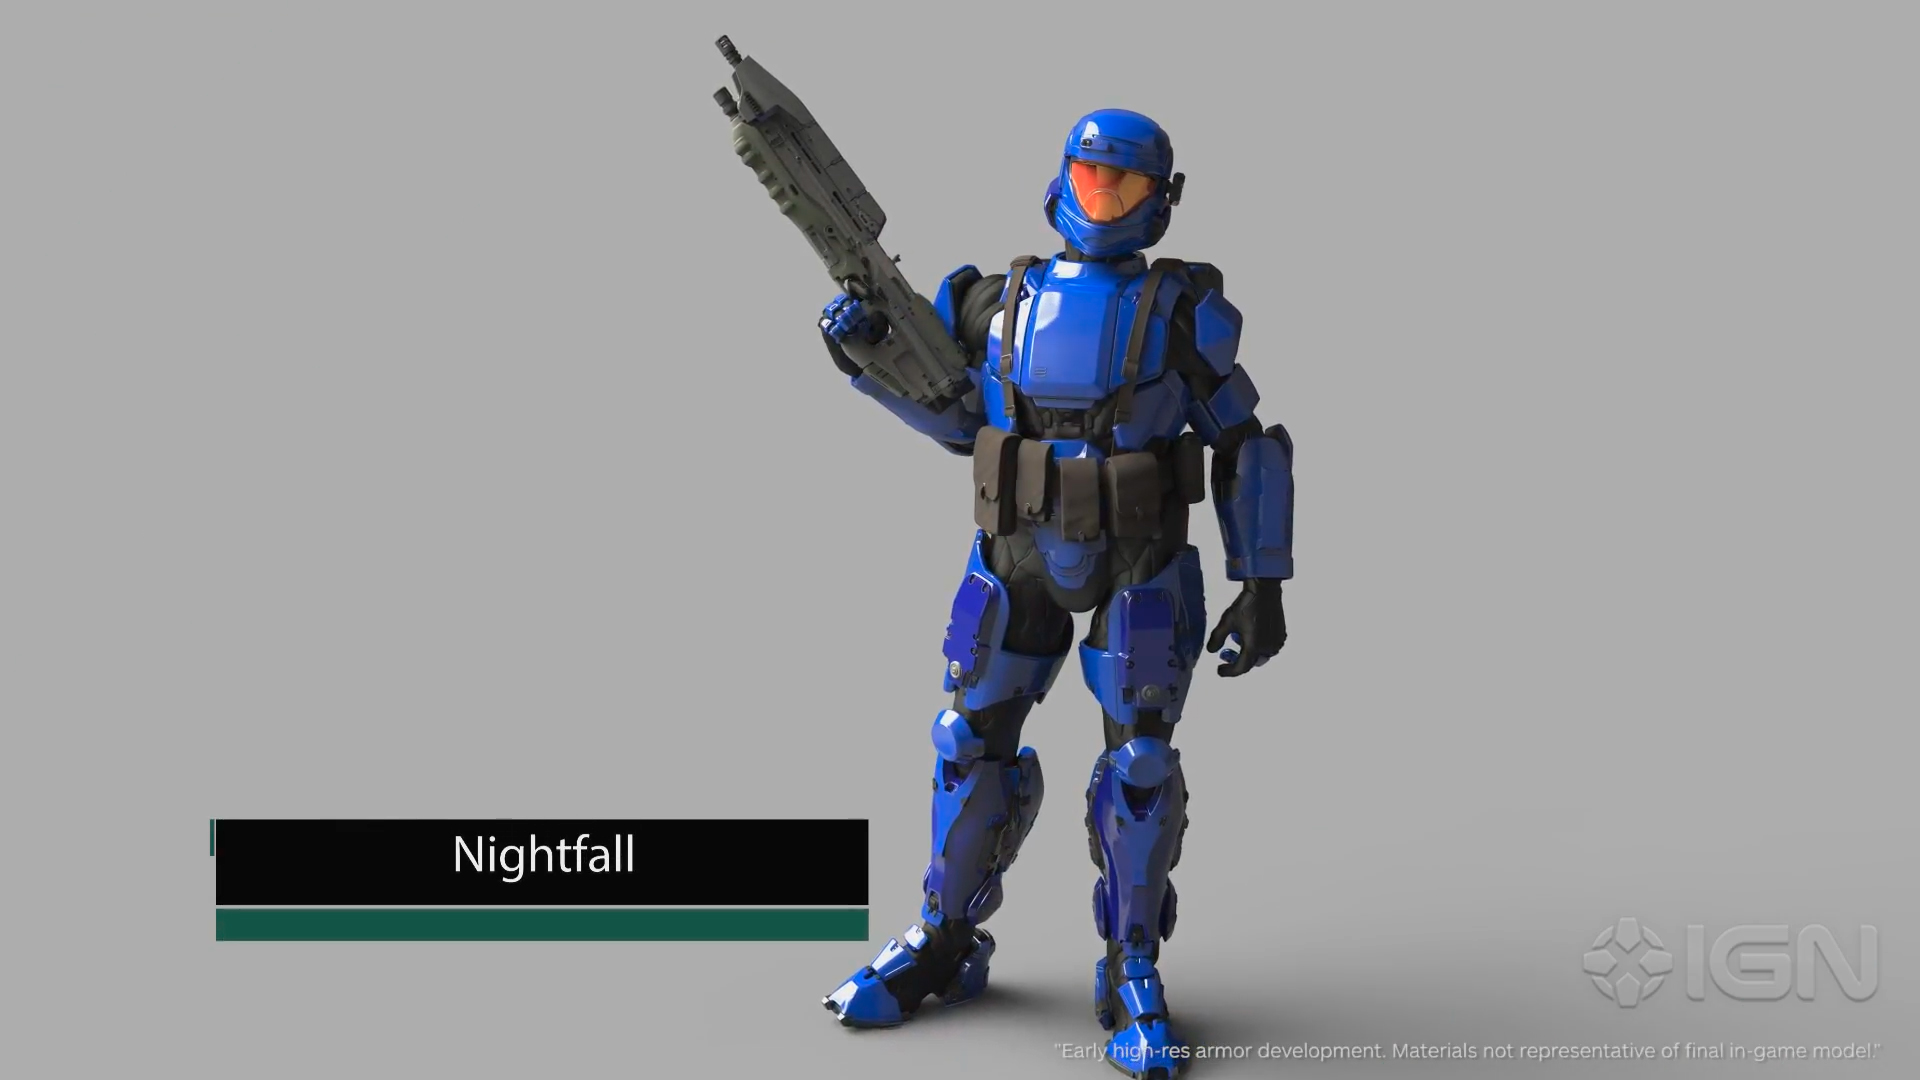 Nightfall Helmet Or Buck S Odst Helmet Halo 5 Guardians Forums Halo Official Site